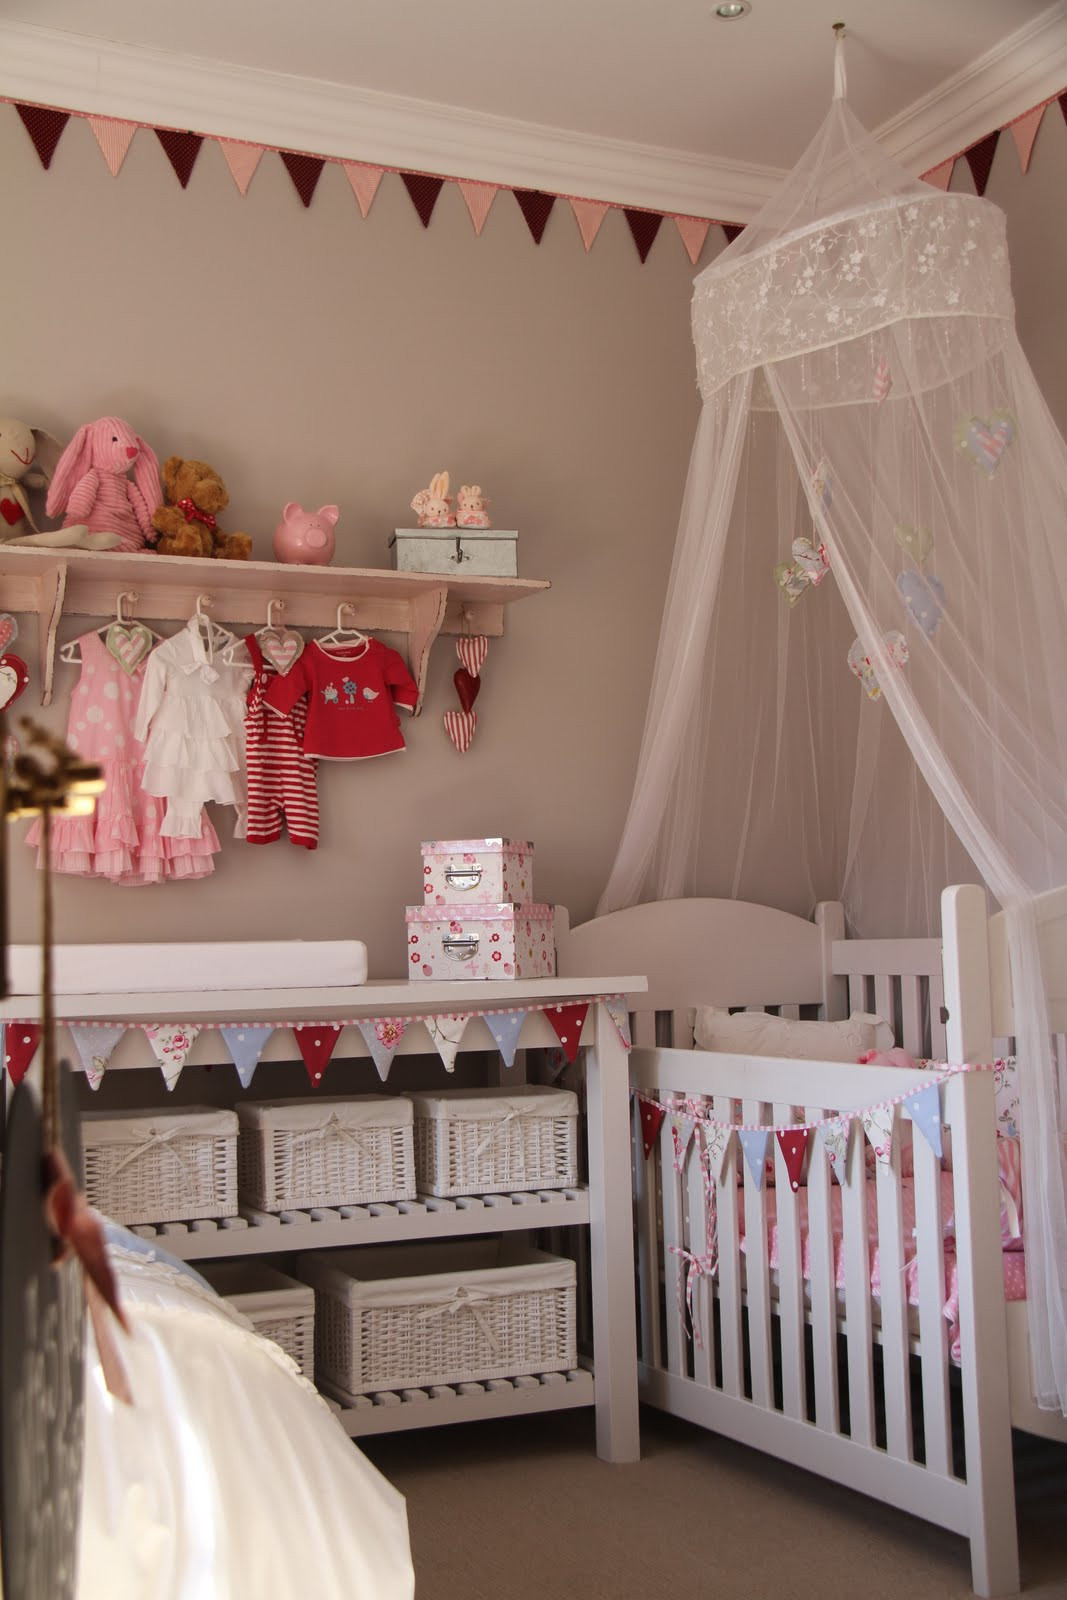 Best ideas about DIY Baby Room . Save or Pin I SPY PRETTY Our Baby Girl Mia s DIY Nursery Now.